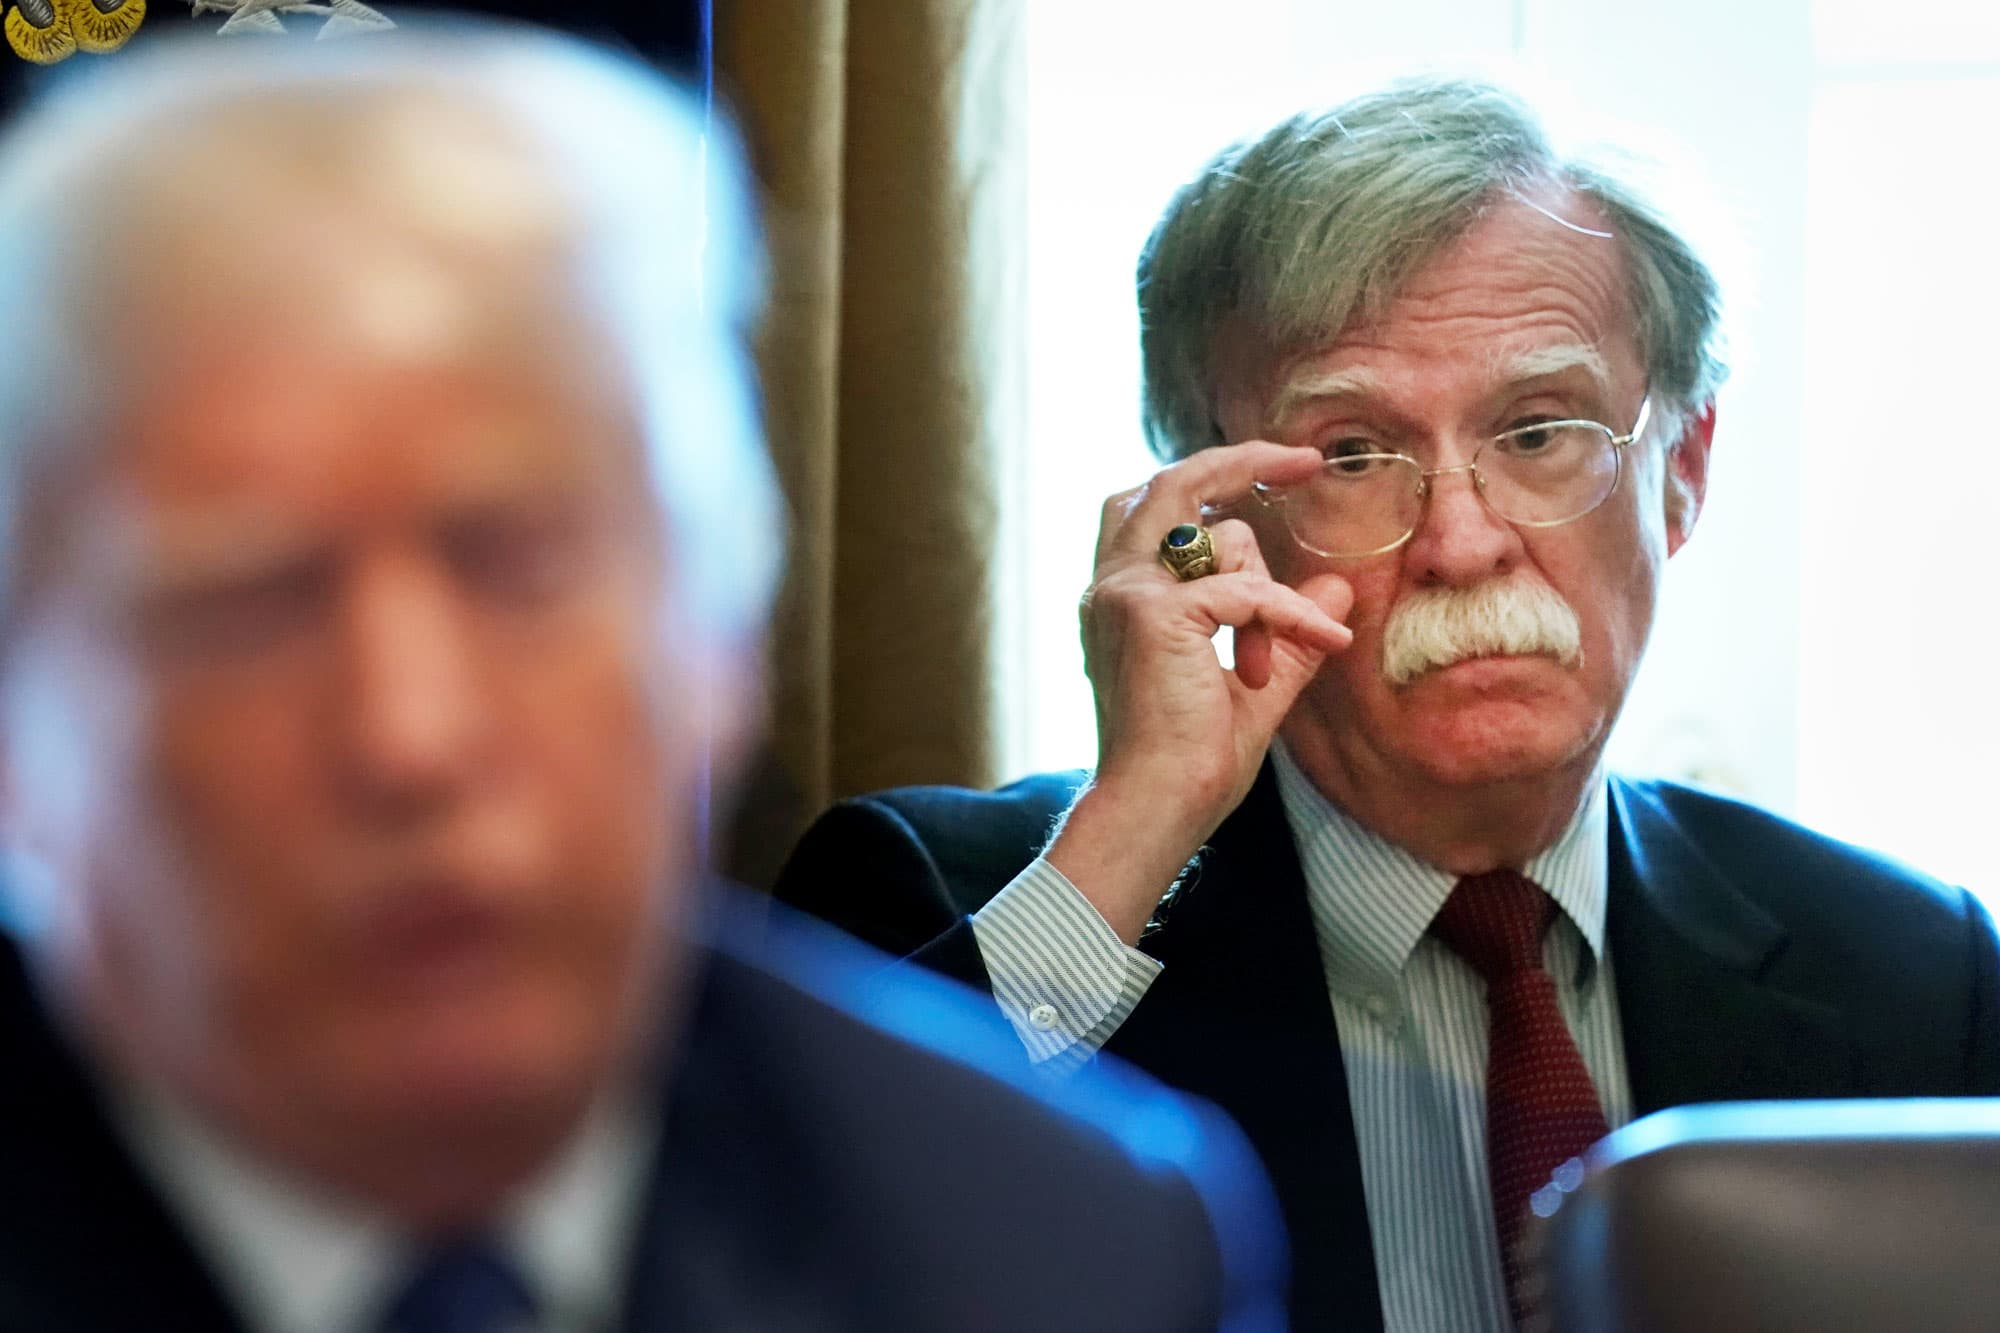 John Bolton says he will testify in Trump's impeachment trial if the Senate subpoenas him